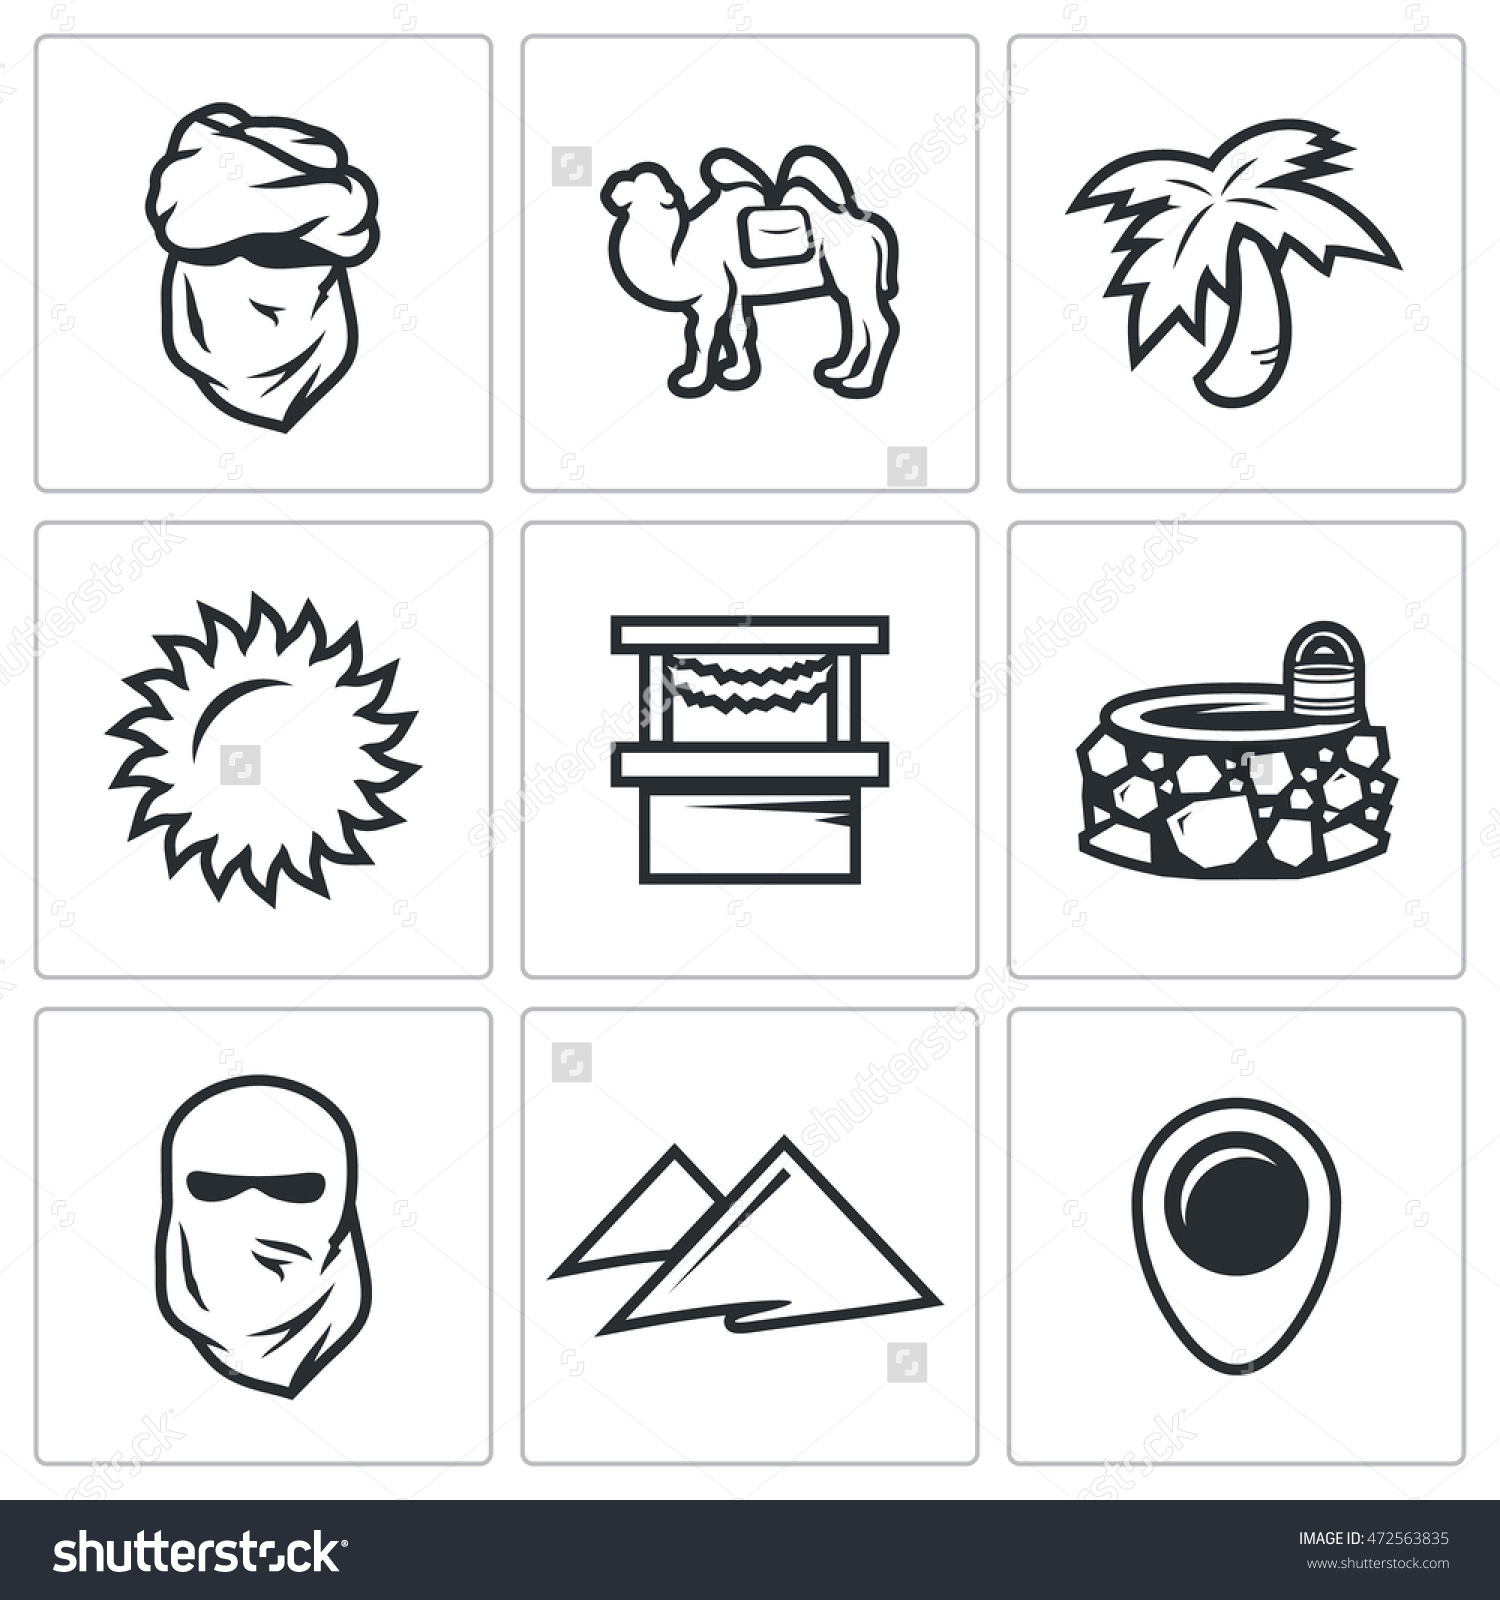 Vector Set Of Middle East Icons. Arab, Camel, Palm, Sun, Market.